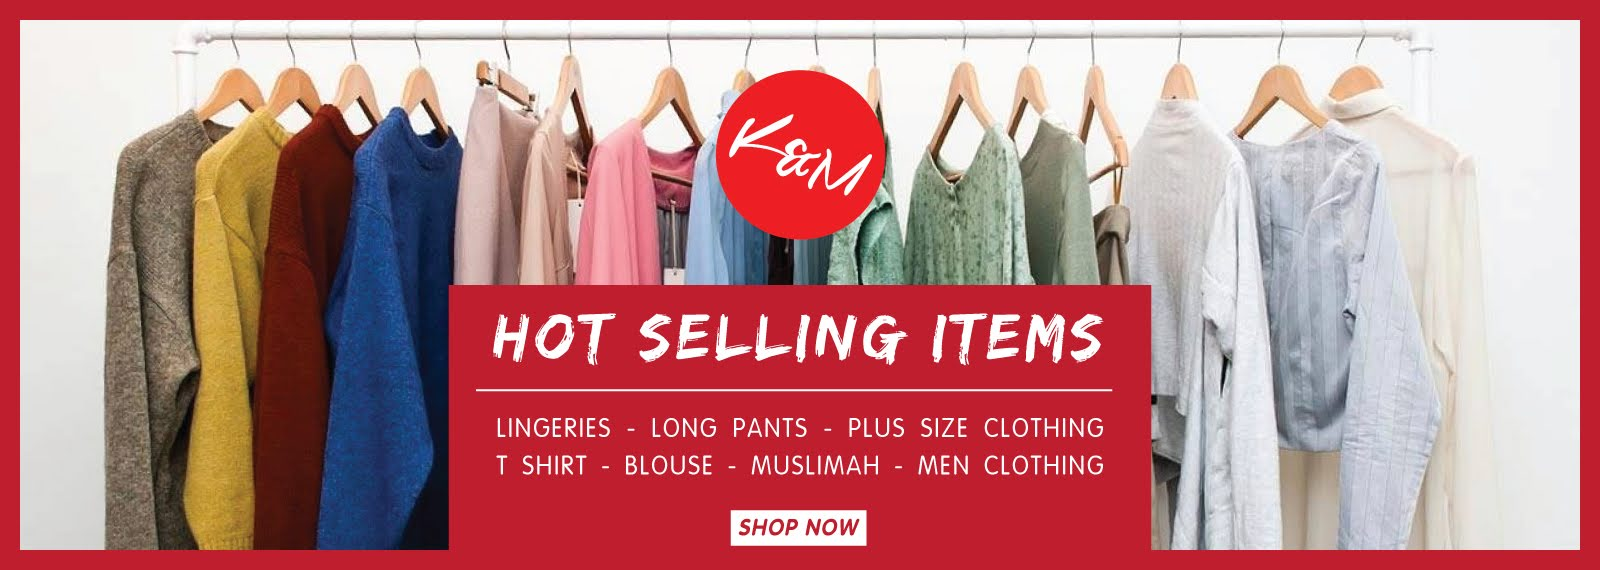 Hot Selling Items